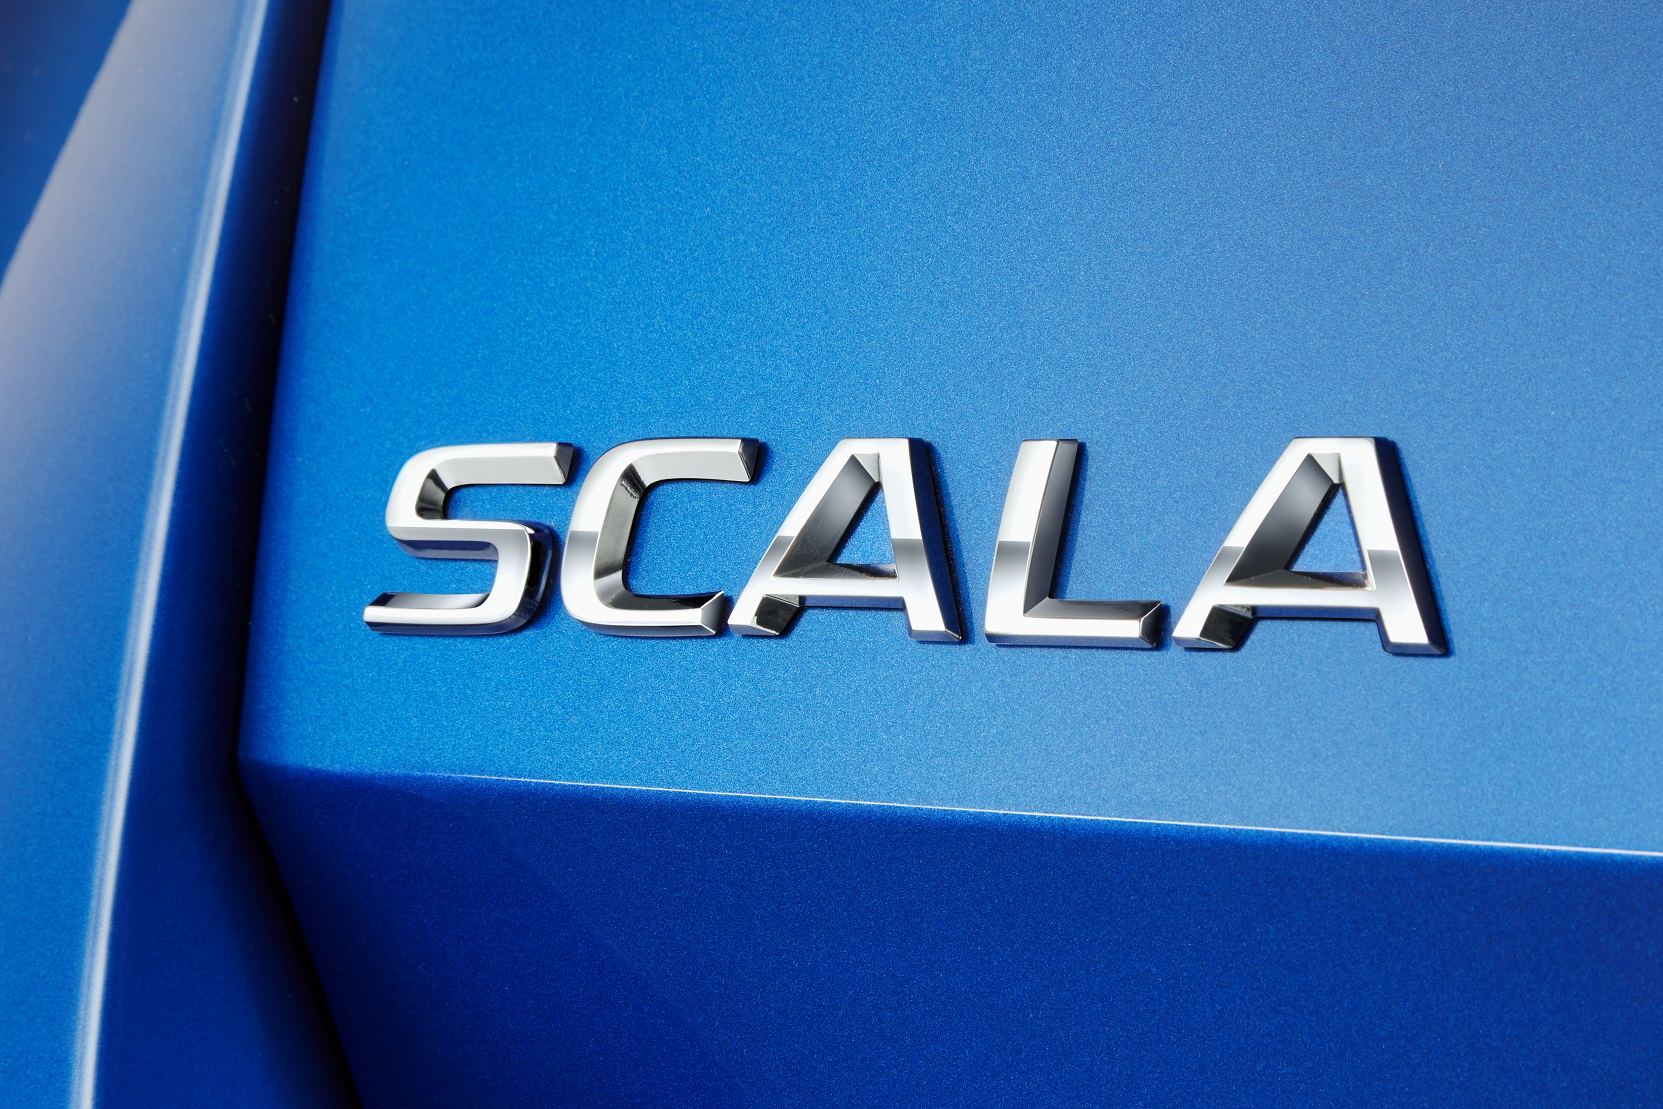 New Skoda compact car to be named Scala